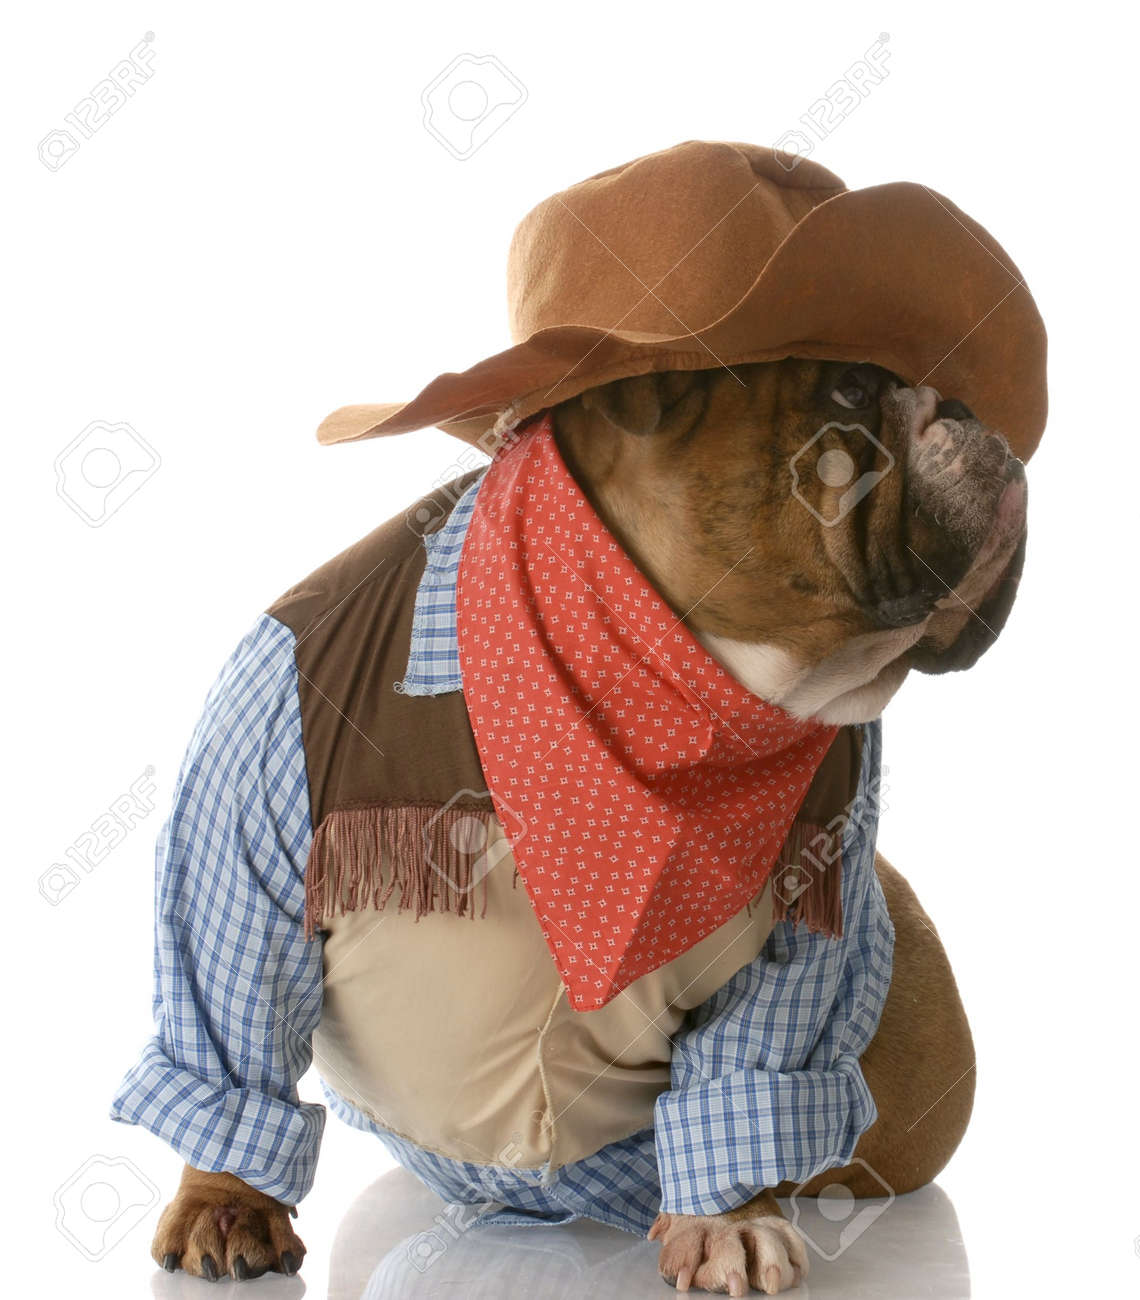 English Bulldog Dressed Up As A Cowboy With Reflection On White